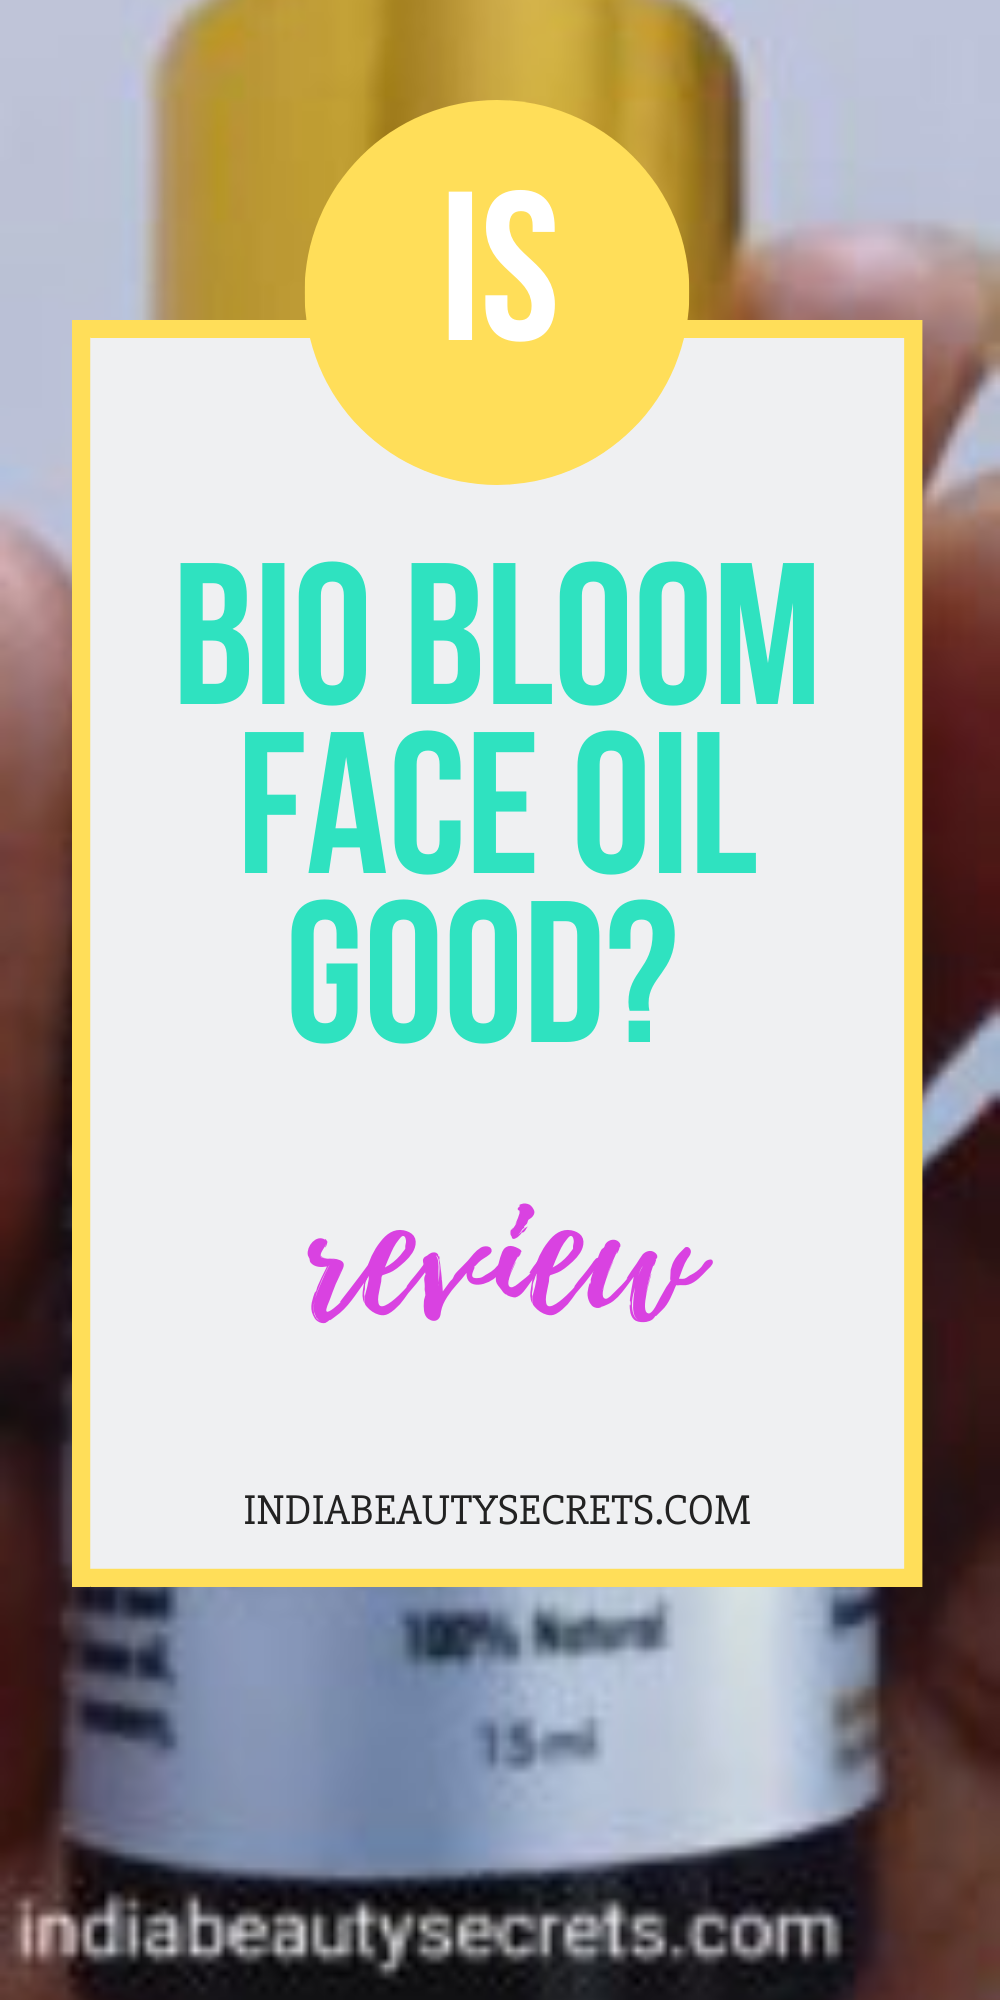 Bio Bloom Face Oil Age Defying Face Oil Review How To Use Biobloom Face Oil For Acne For Dry Skin Oily Face Products Skincare Face Oil India Beauty Secrets